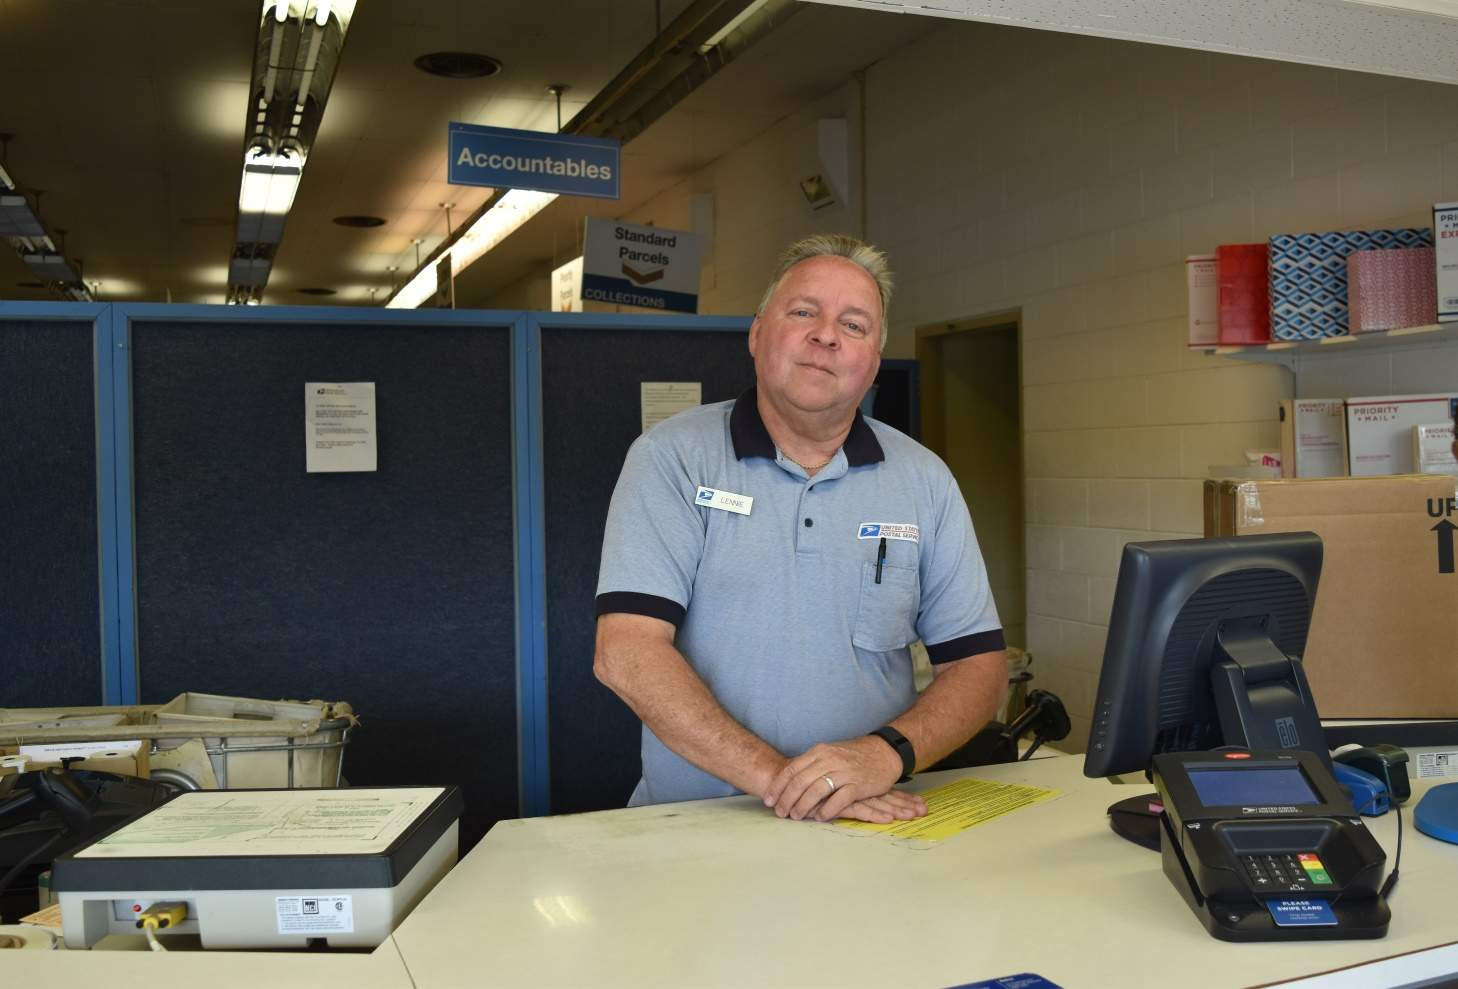 Lennie Kaylor, a postal worker at the Harrisburg Post Office, spent his last day working Friday before his retirement. Kaylor spent the last 27 years as a postal employee.